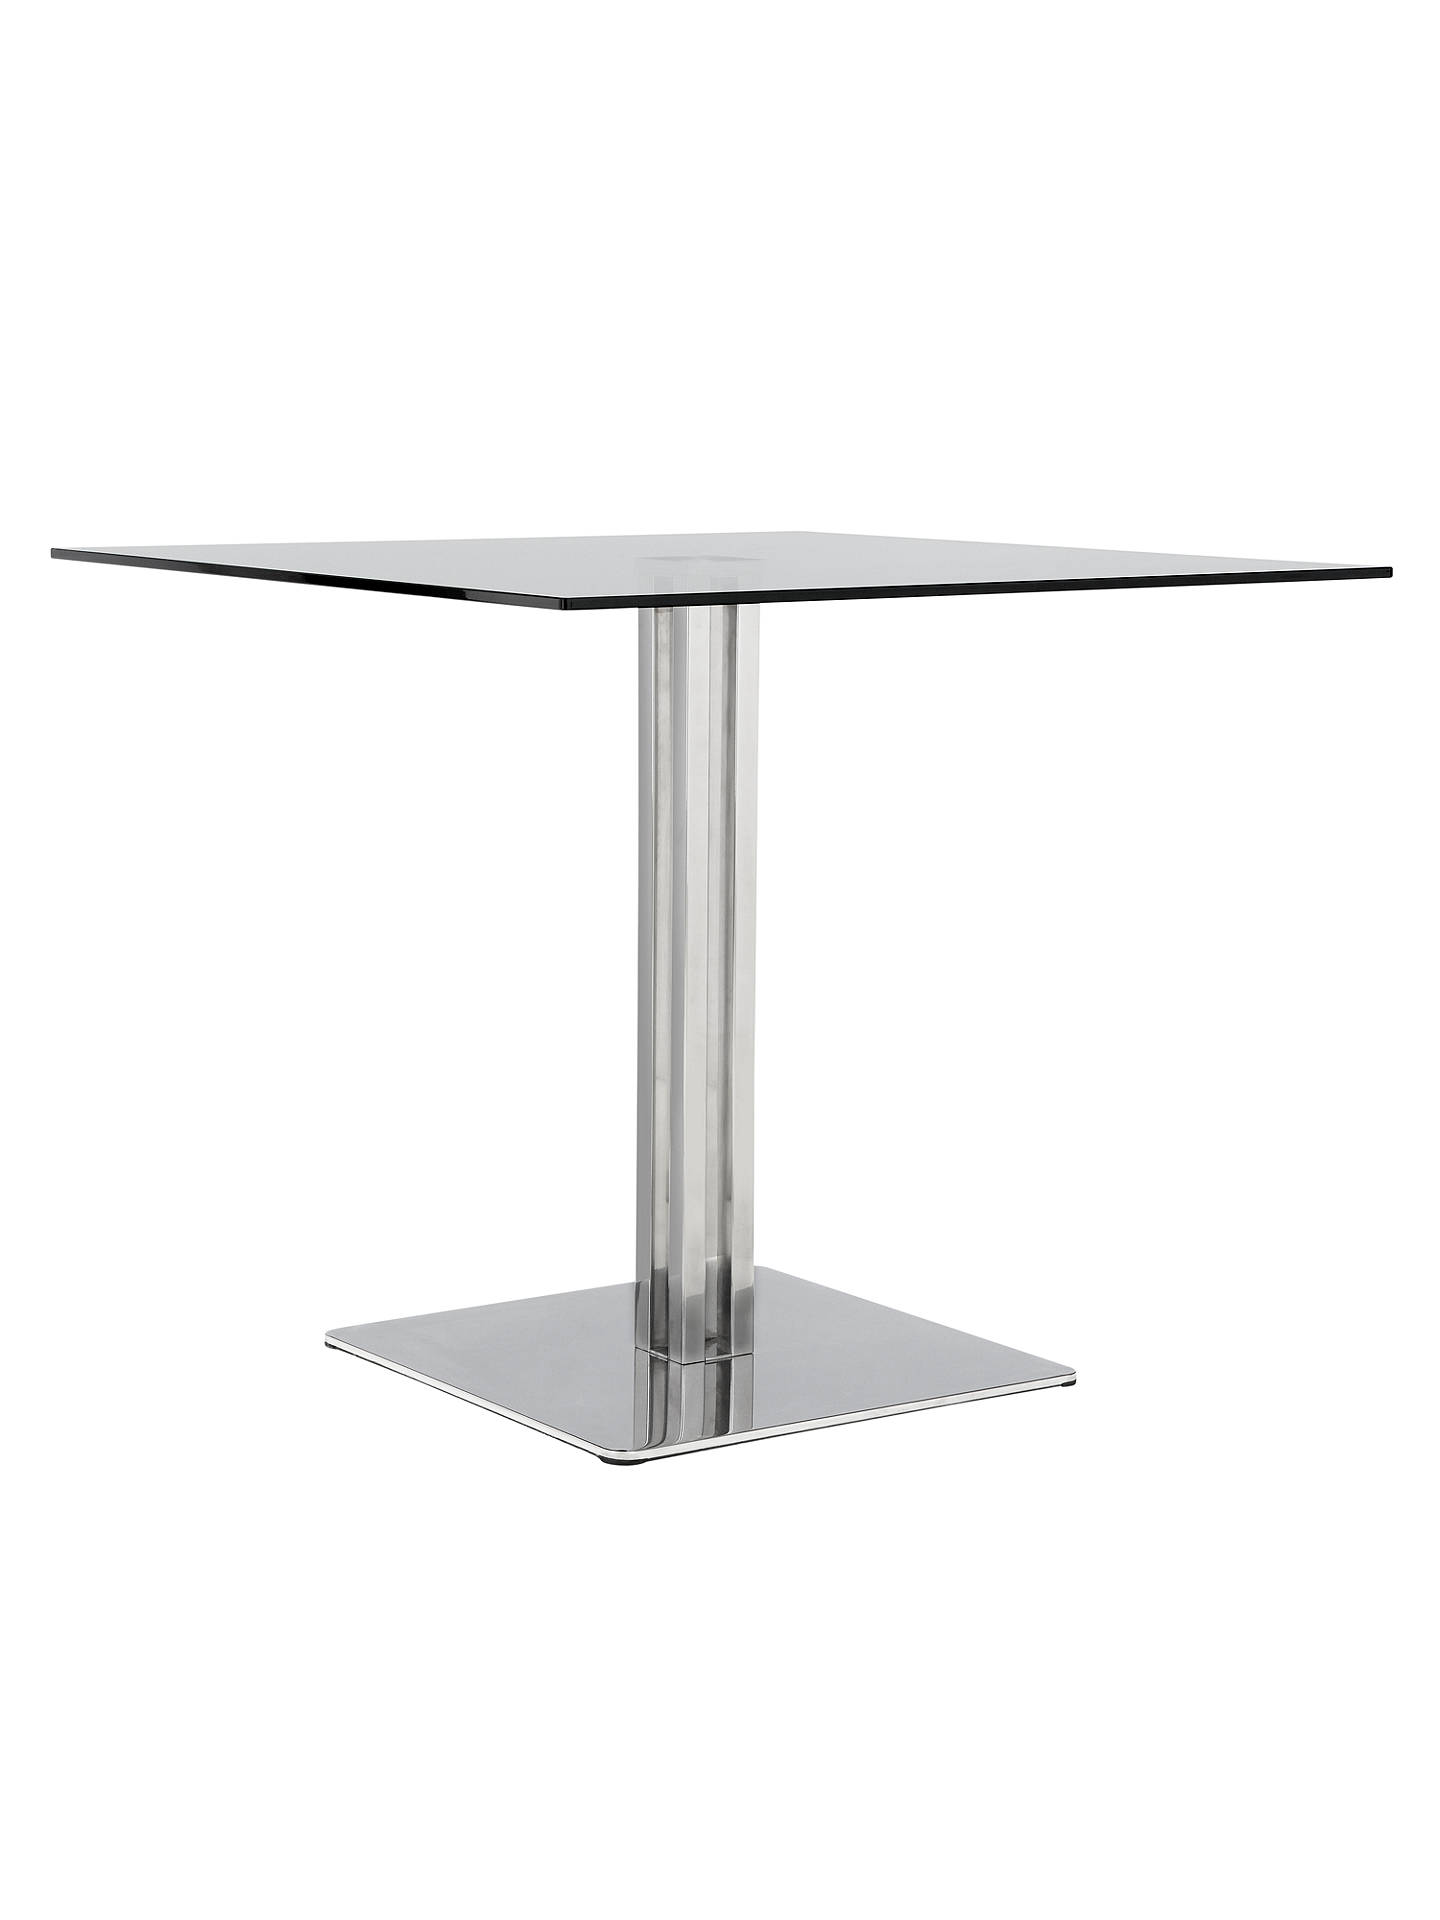 john lewis tropez square 4 seater glass top dining table. Black Bedroom Furniture Sets. Home Design Ideas